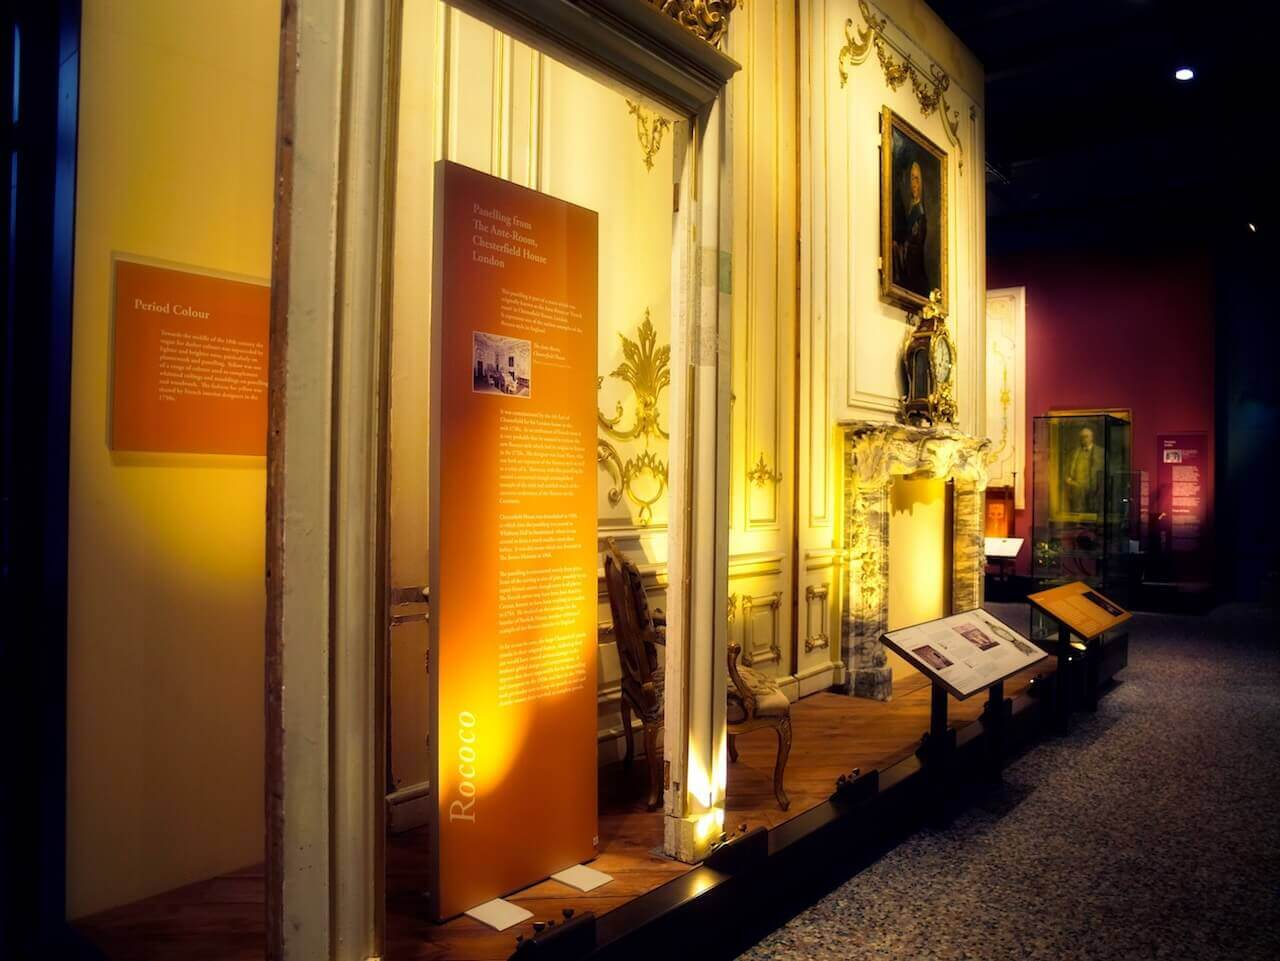 An image to show the description signs along an exhibit